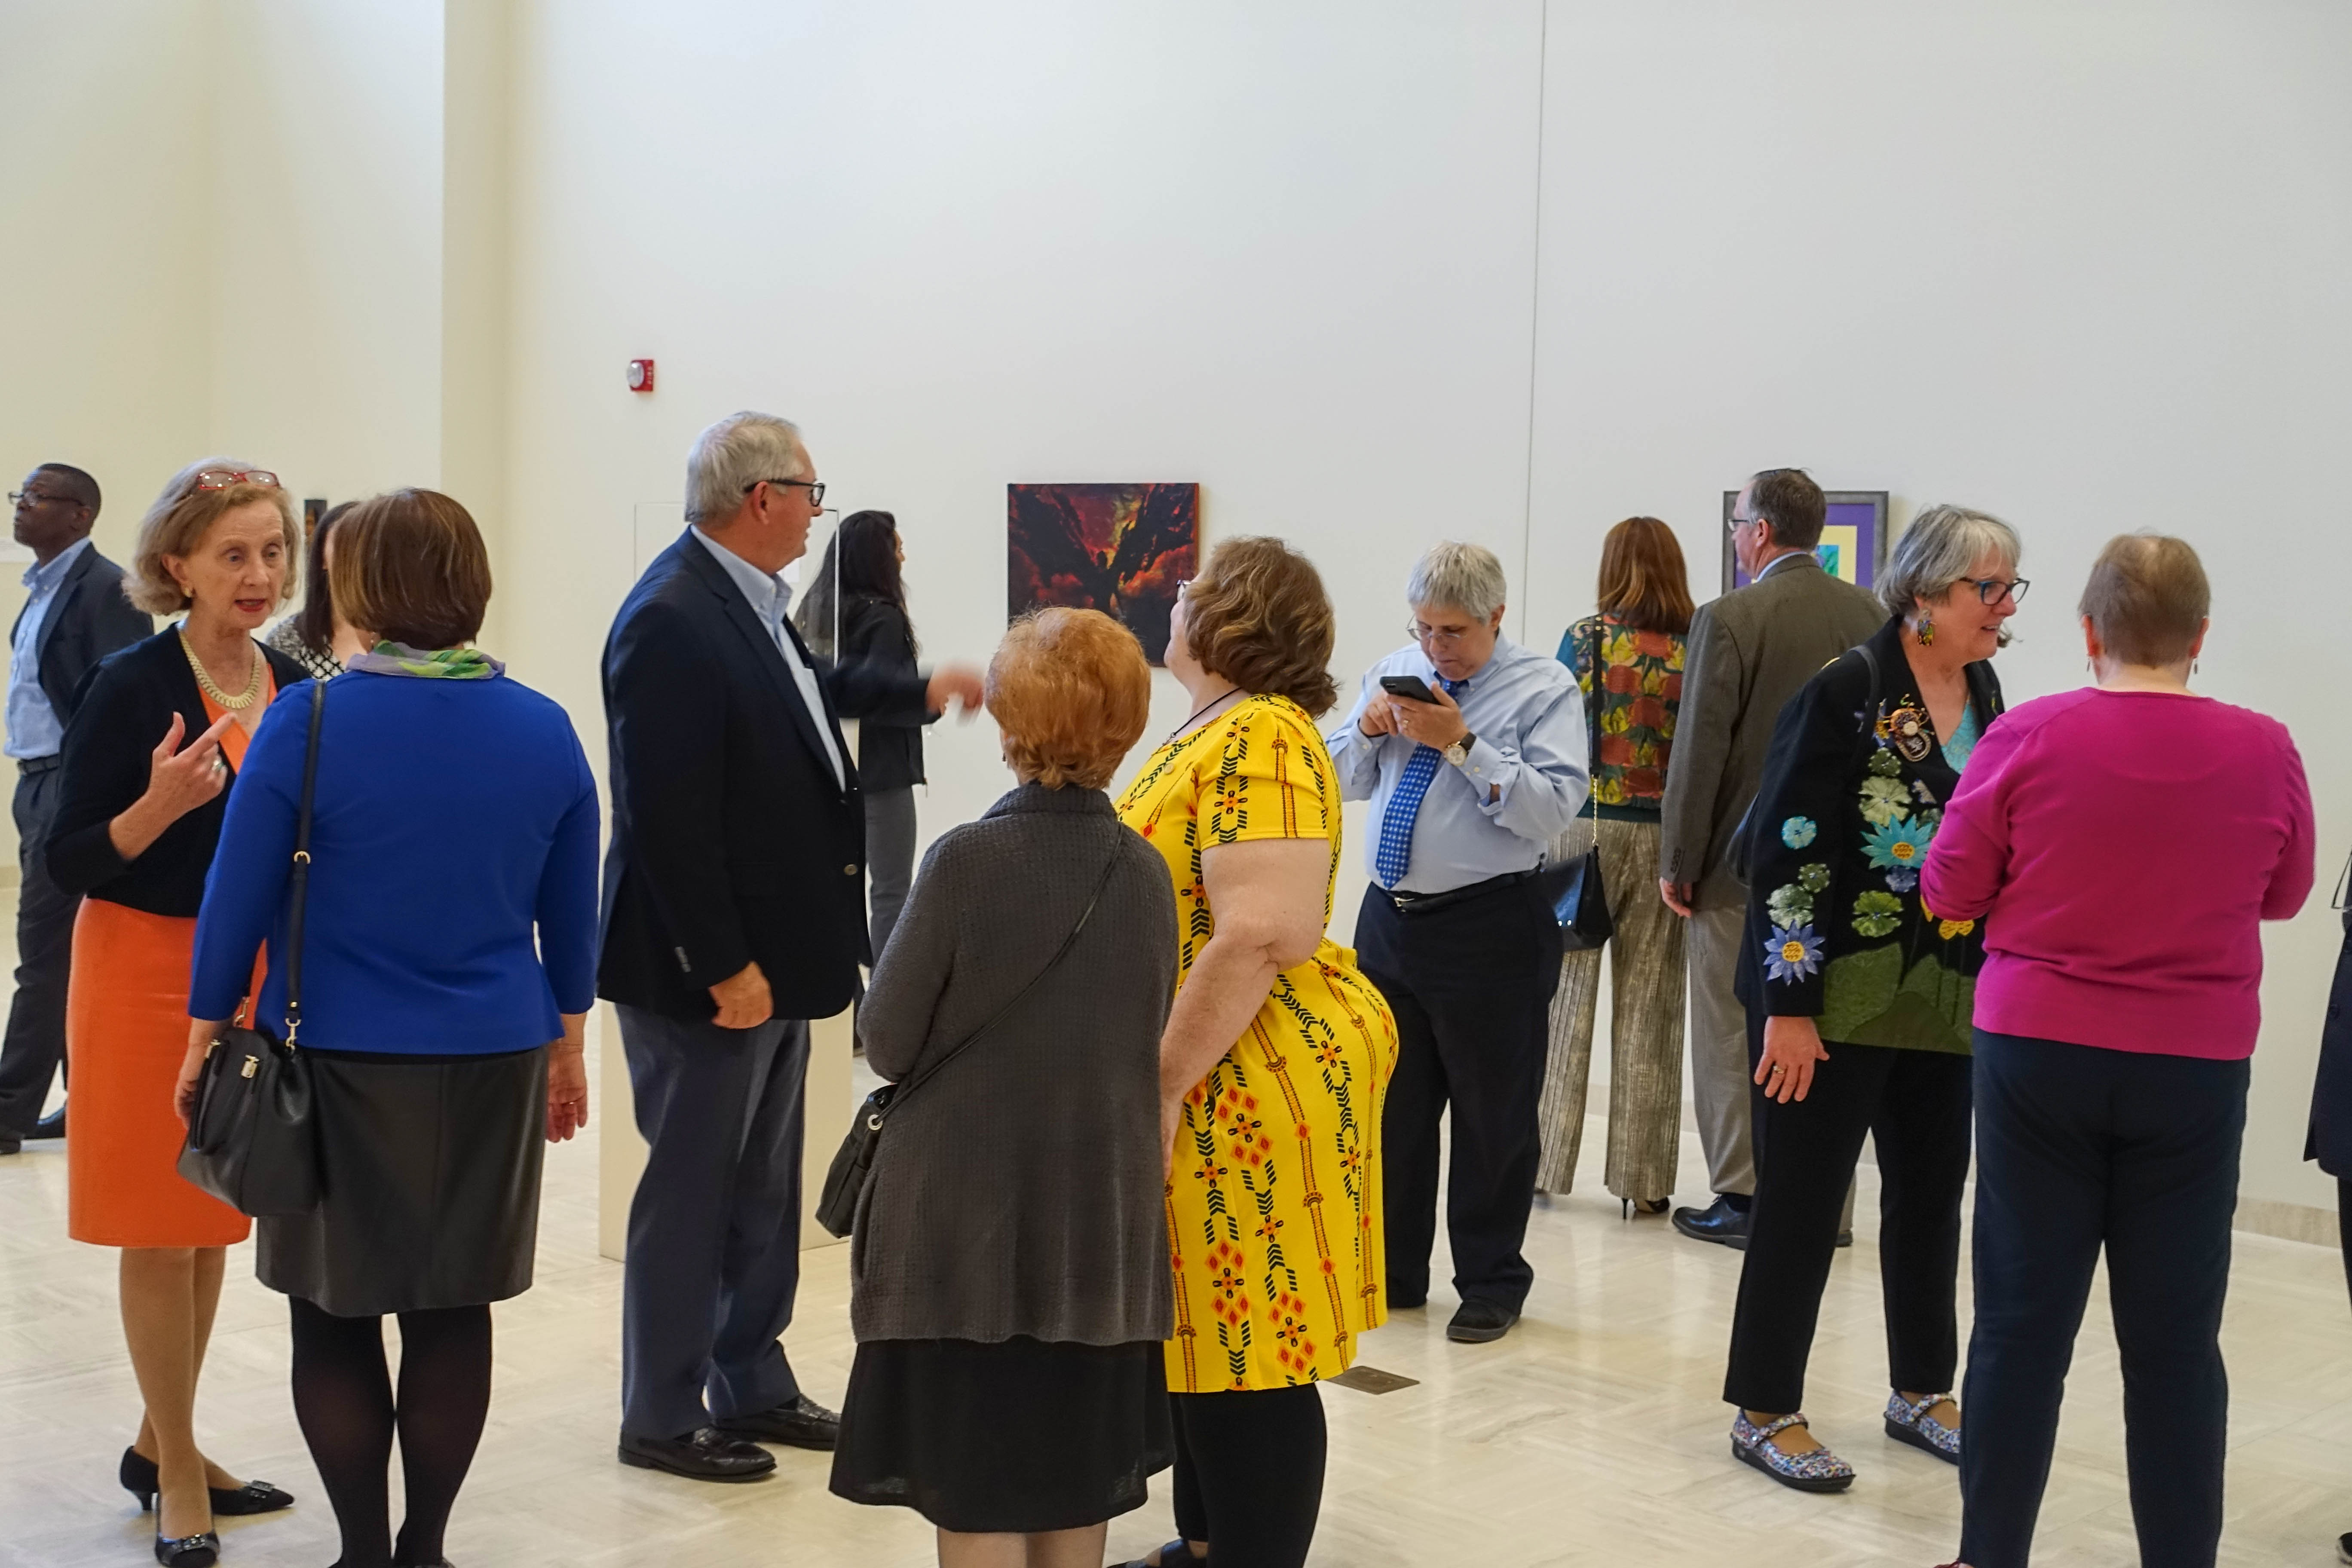 Visitors to the 2017 Creative Cardinals exhibit